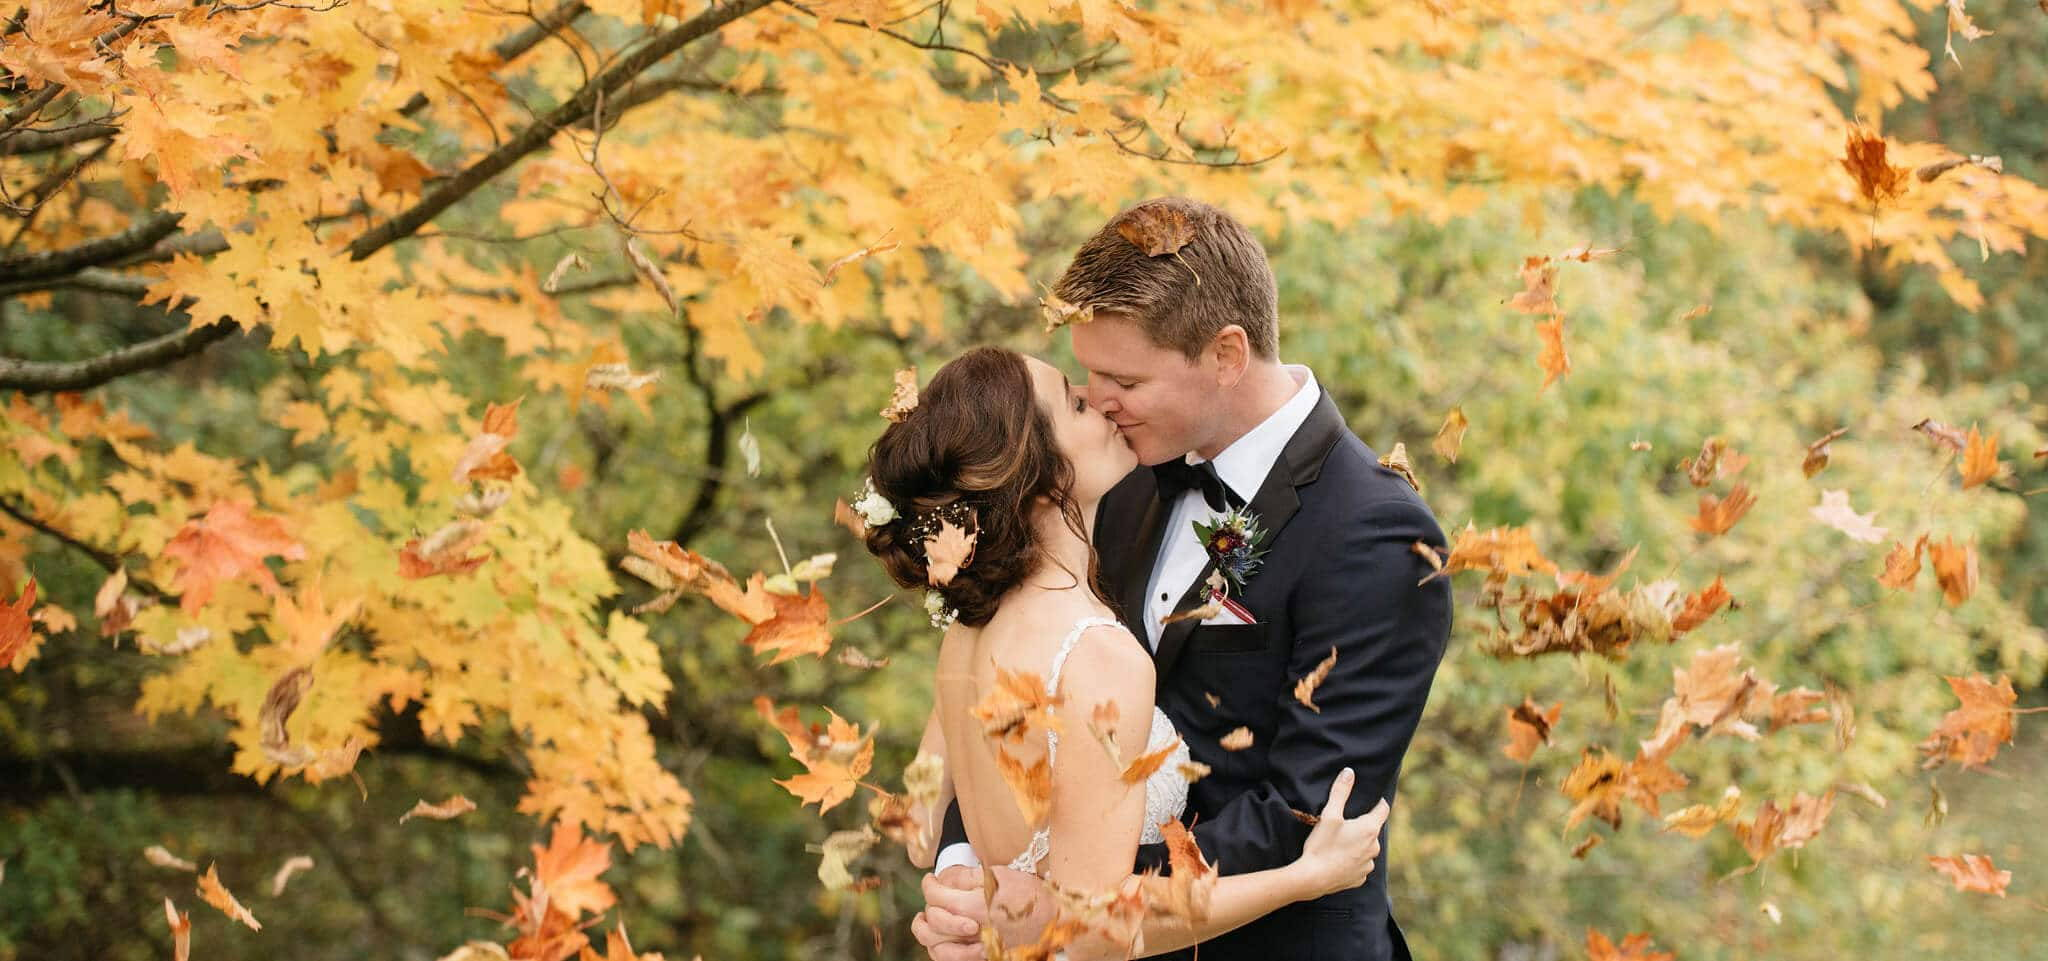 Hero image for Lauren and Brad's Cozy Fall Wedding at the Manor